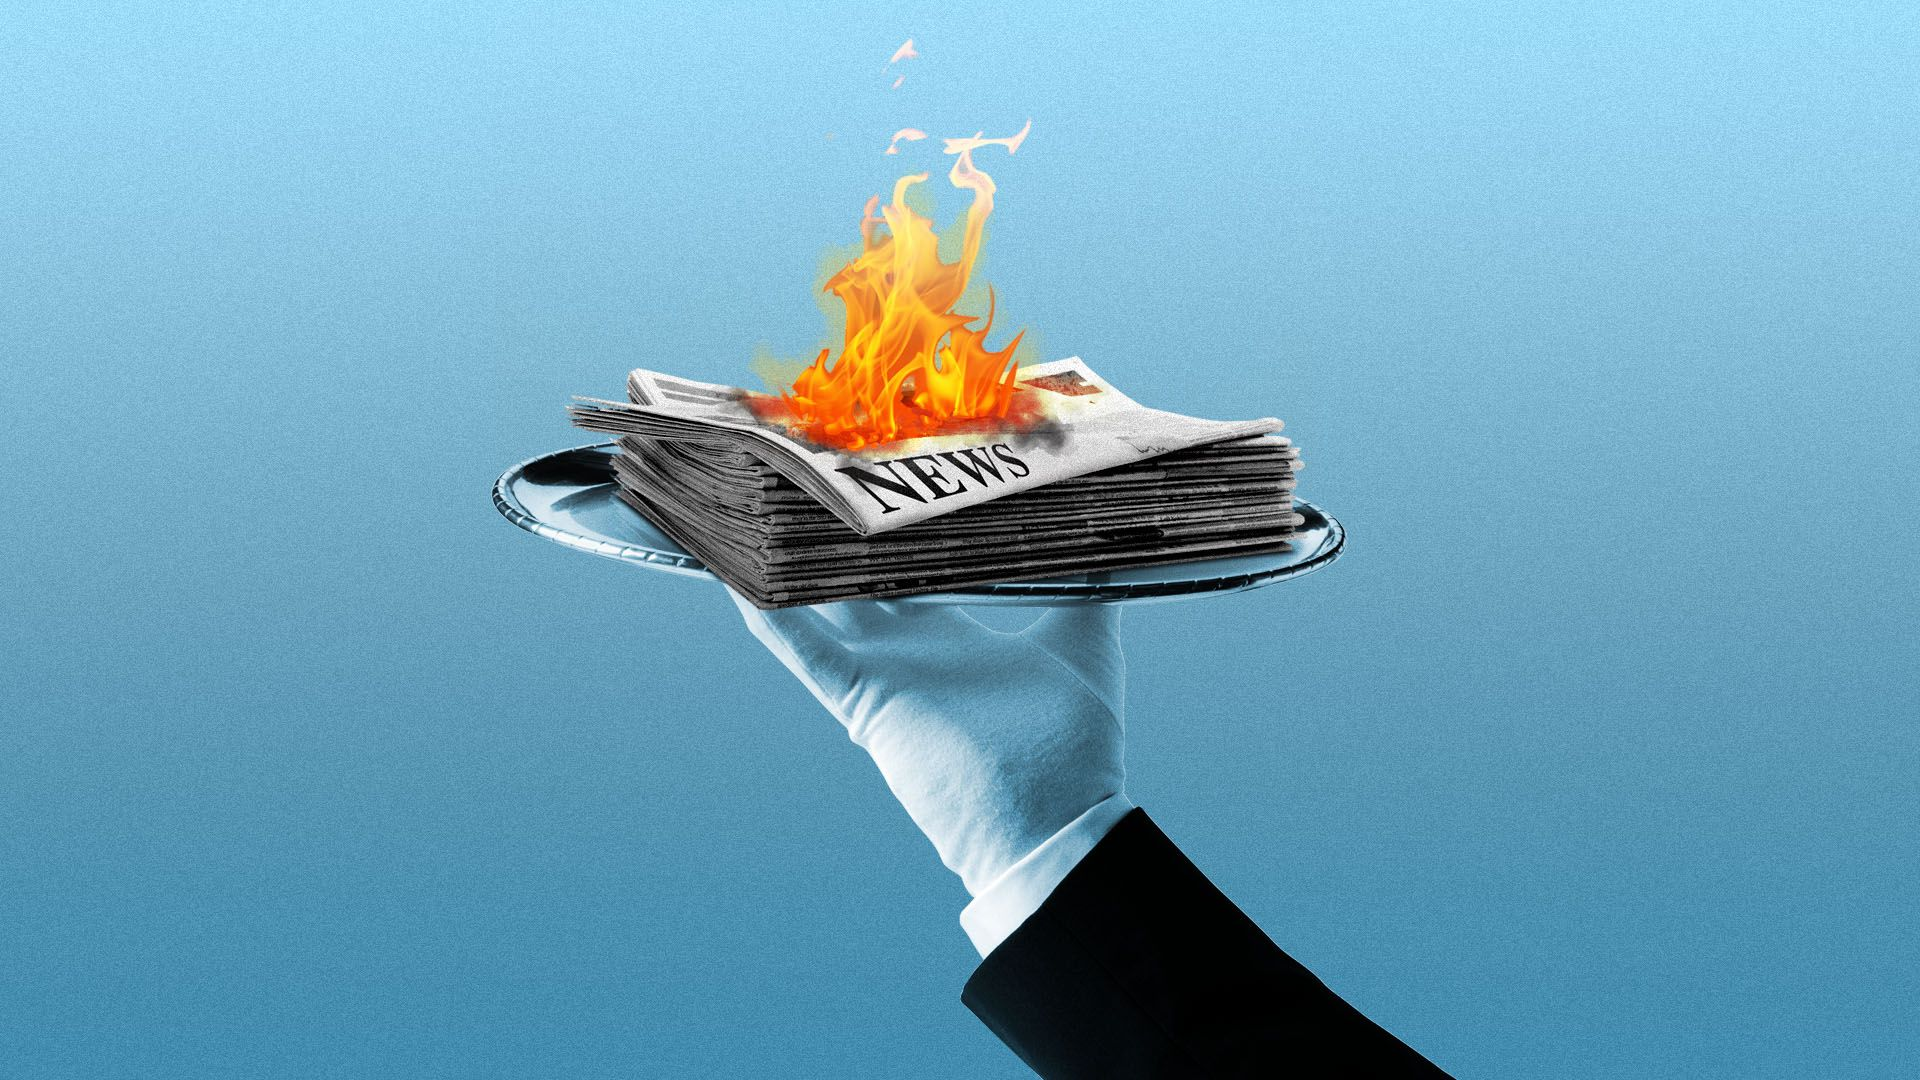 Illustration of a butler holding a silver platter with a newspaper on top that's on fire